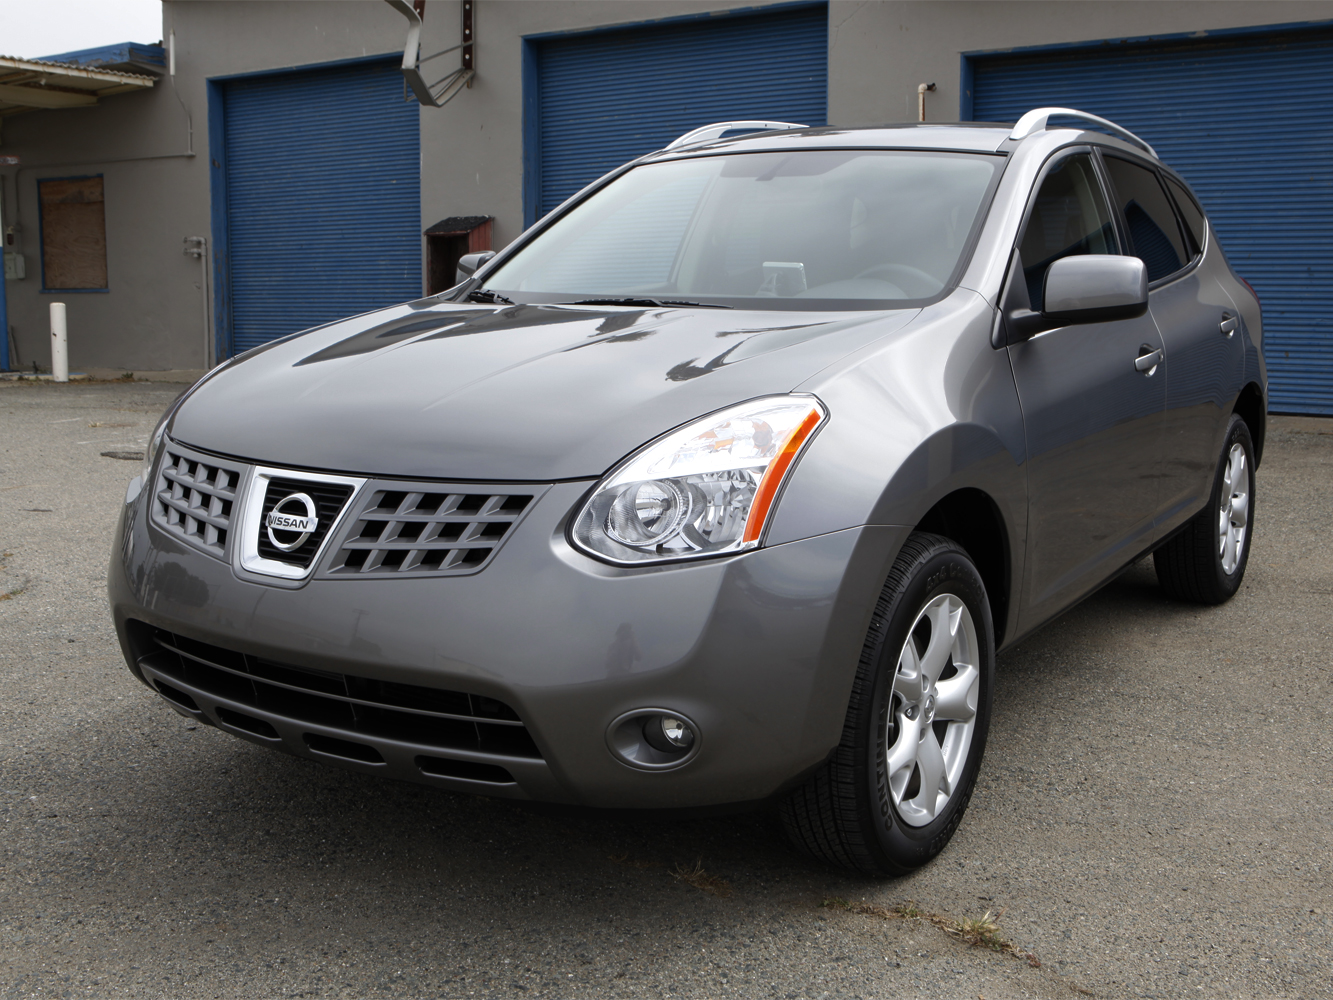 2009 nissan rogue sl fwd review cnet. Black Bedroom Furniture Sets. Home Design Ideas